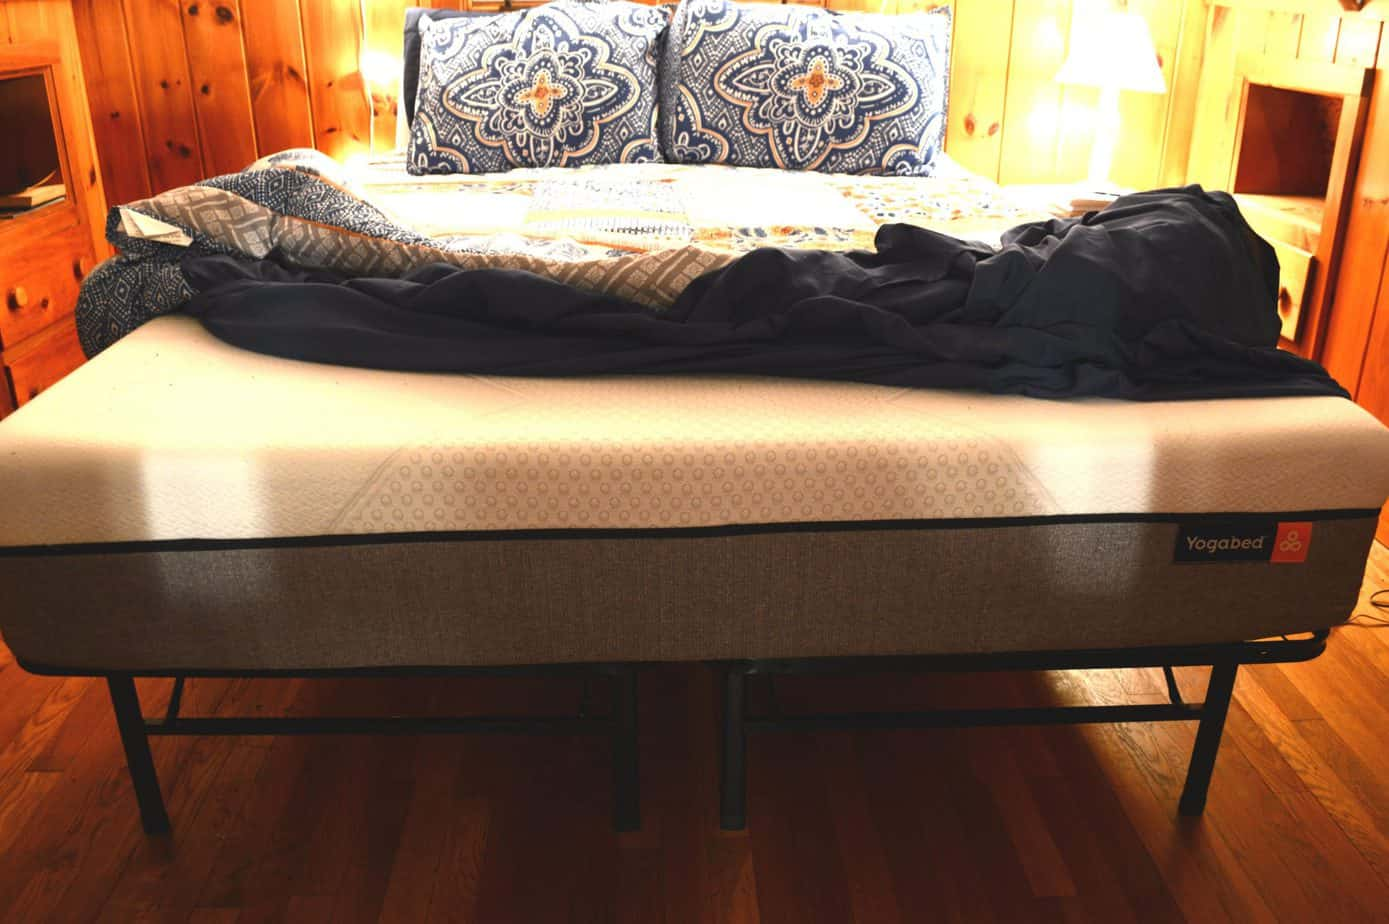 Best Mattress For Couples The Best Mattress For Couples Yogabed Review